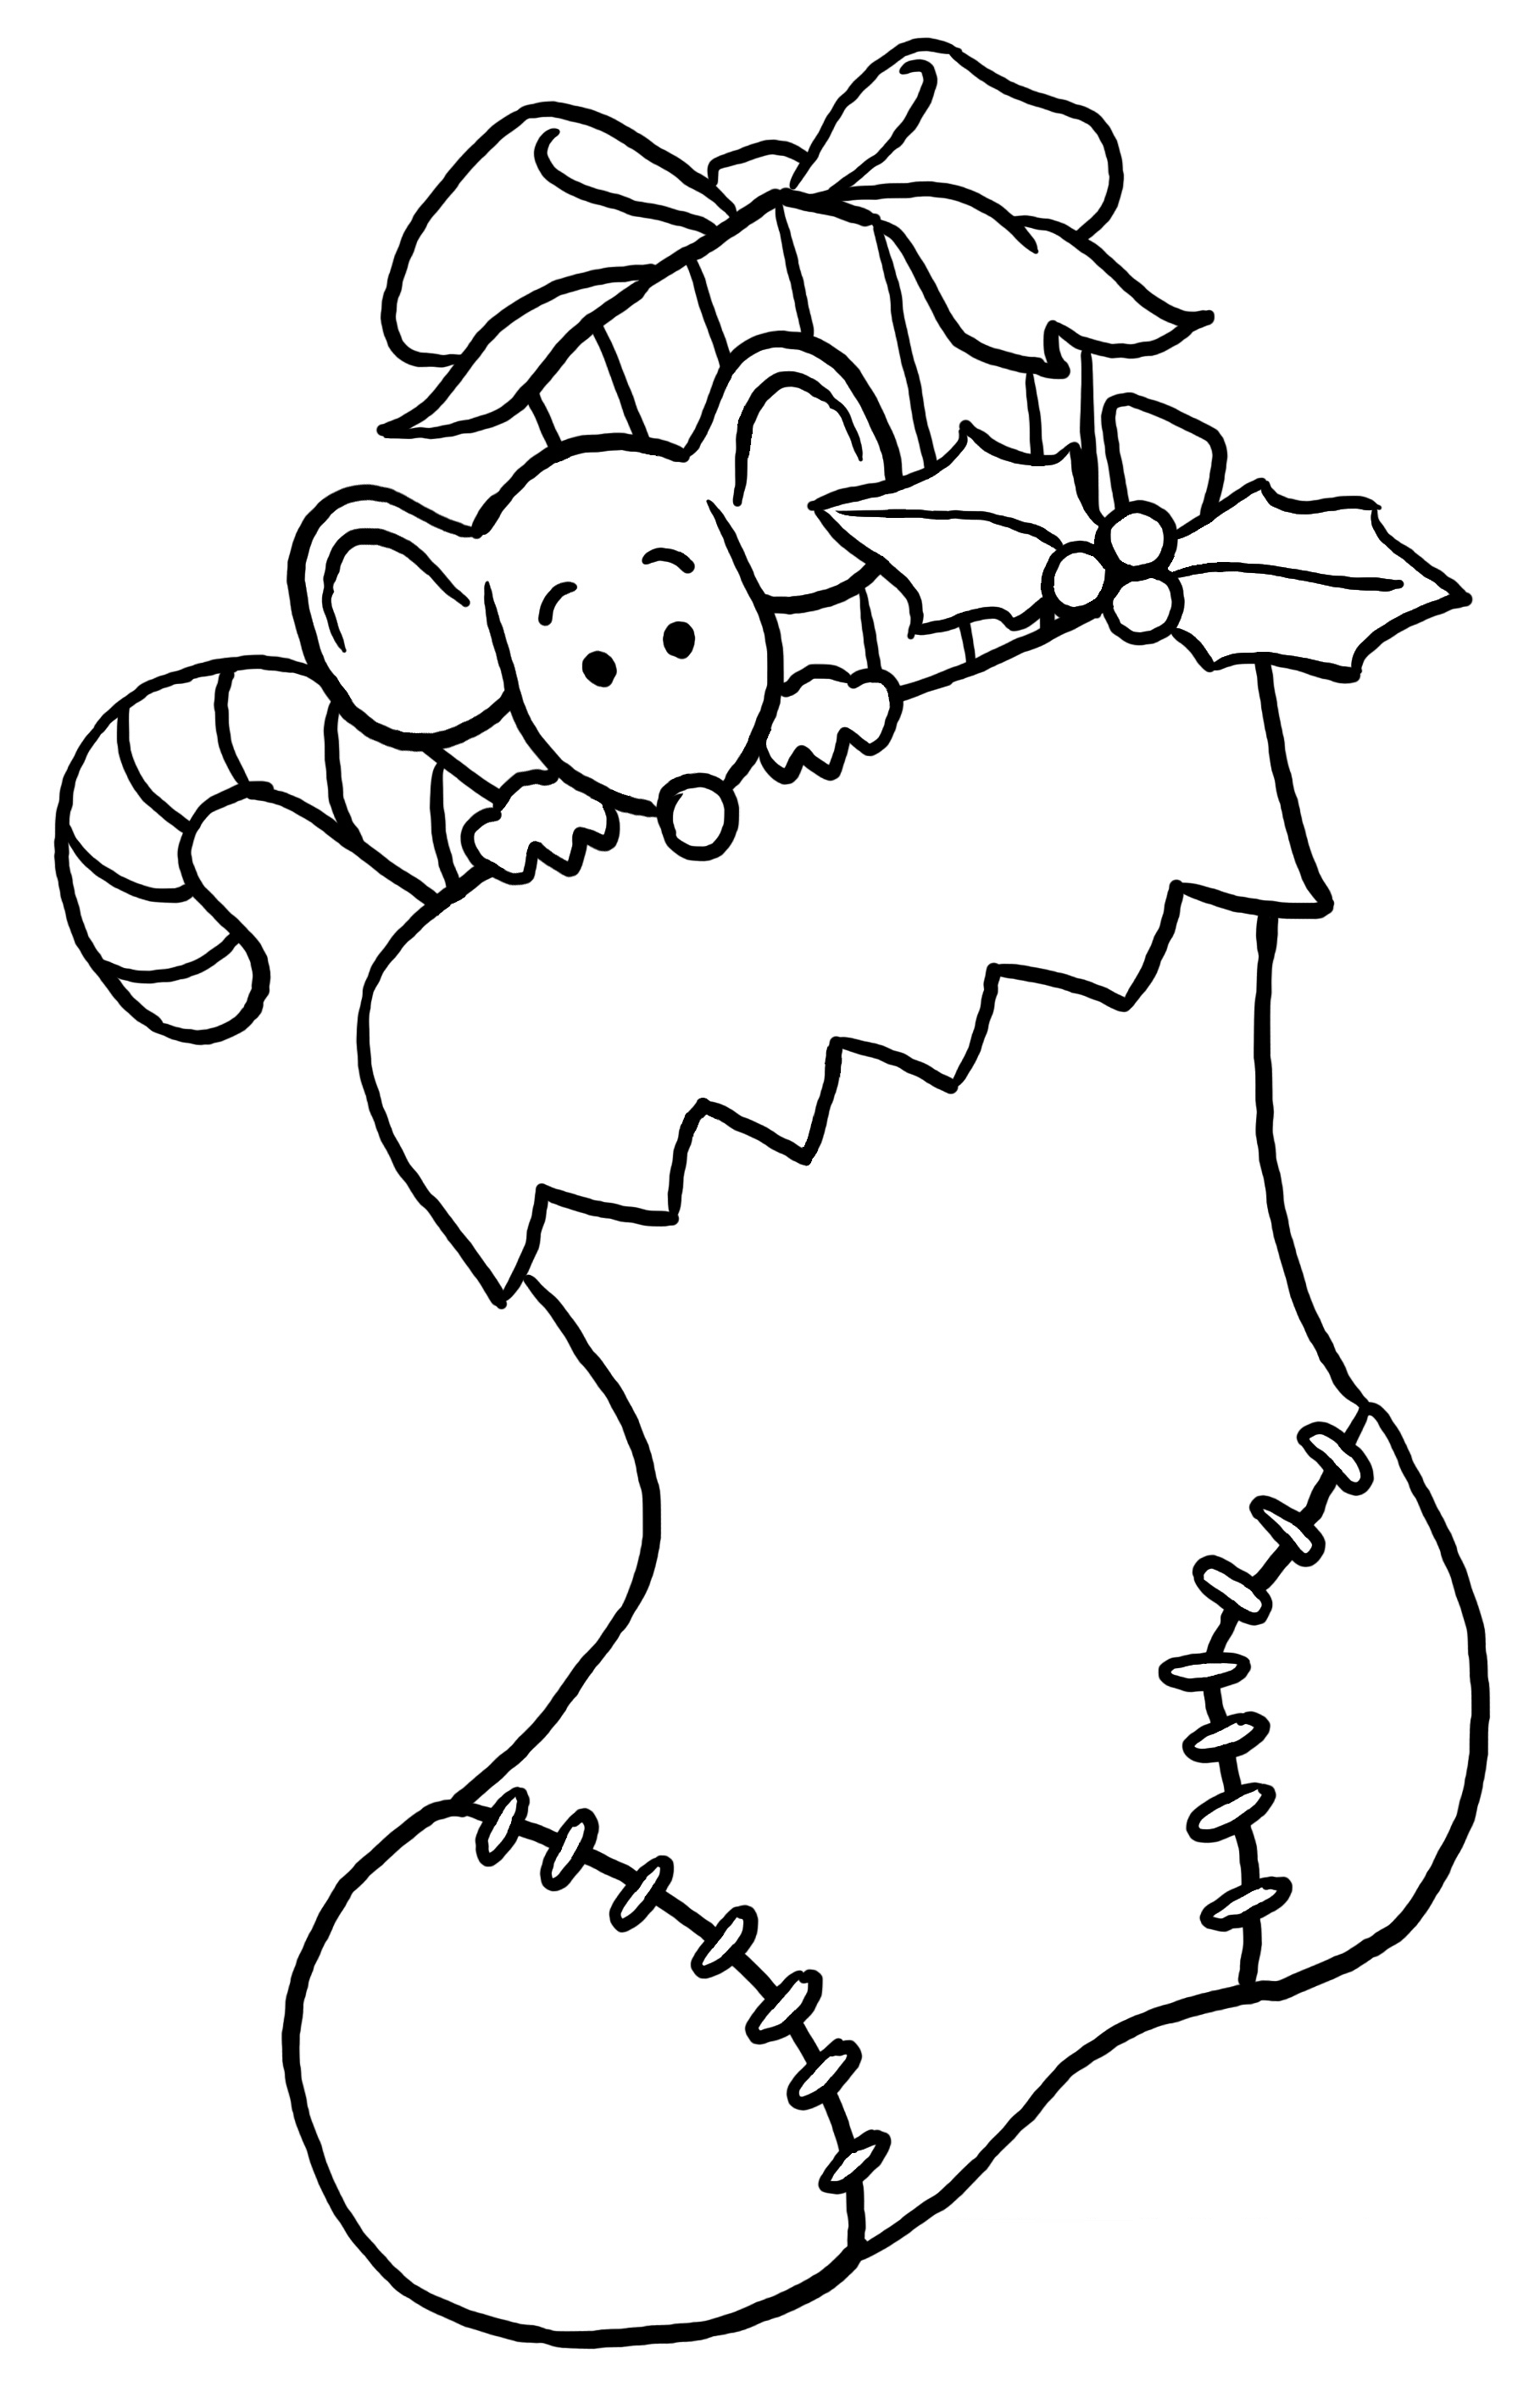 coloring pages to print out for christmas ongarainenglish christmas coloring sheets christmas to print coloring pages for out